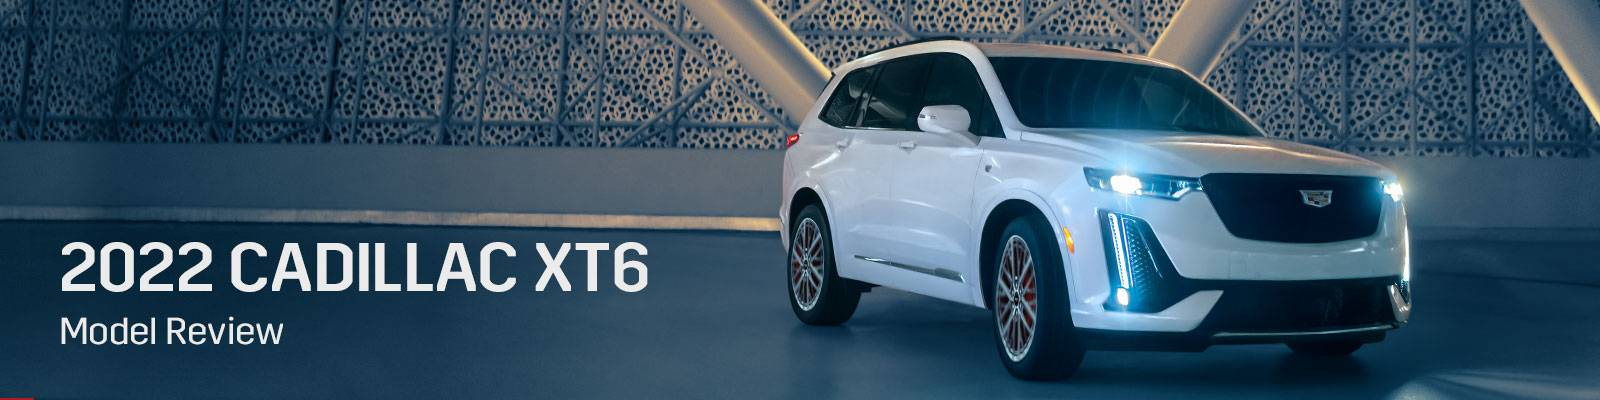 Cadillac XT6 Model Overview - Germain Cadillac of Easton